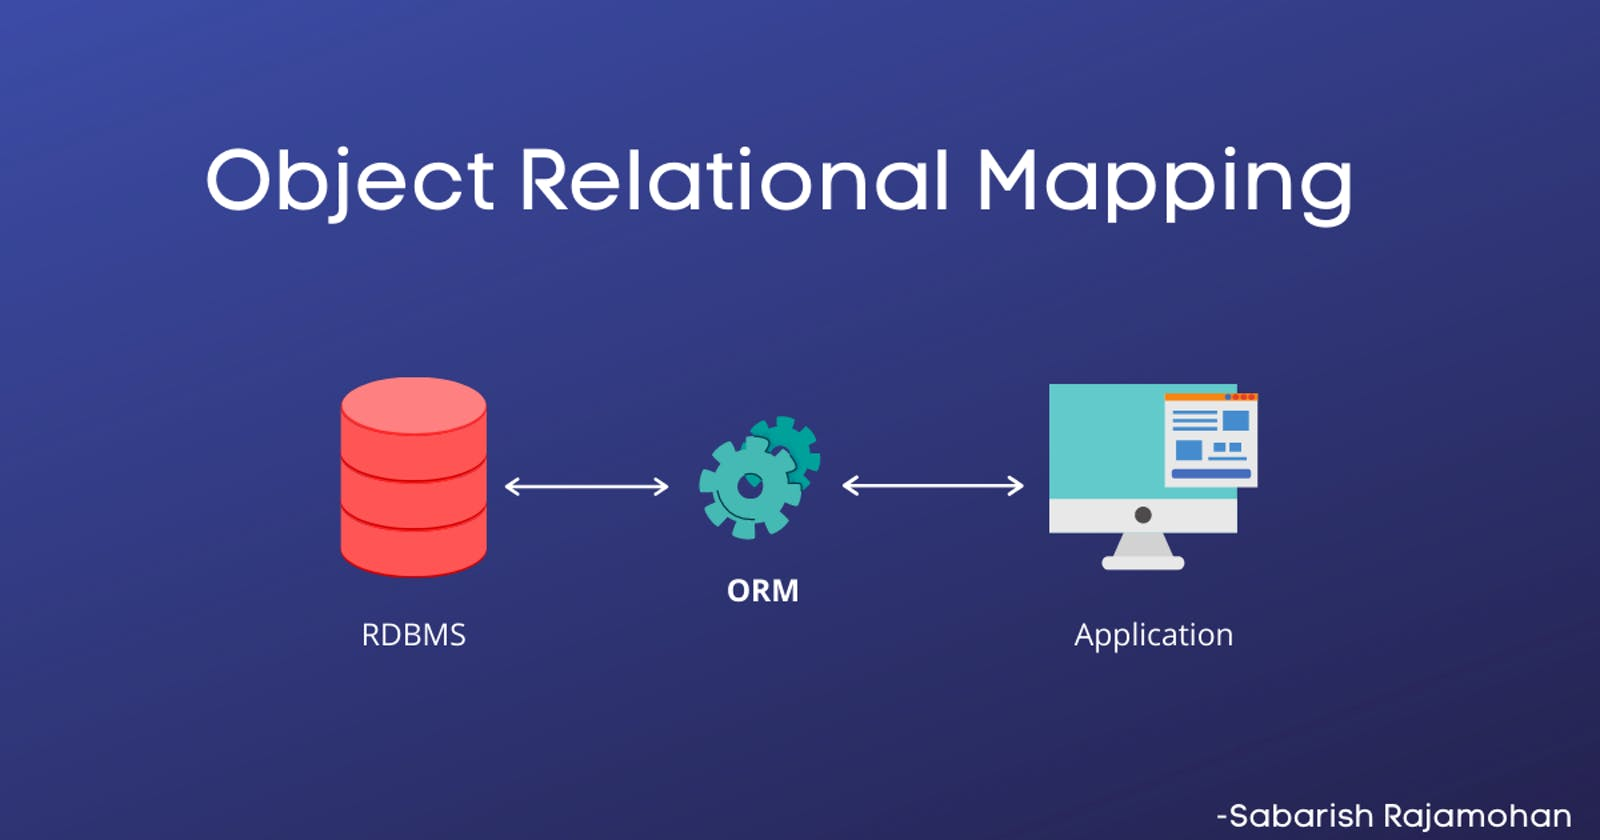 What is Object Relational Mapping?